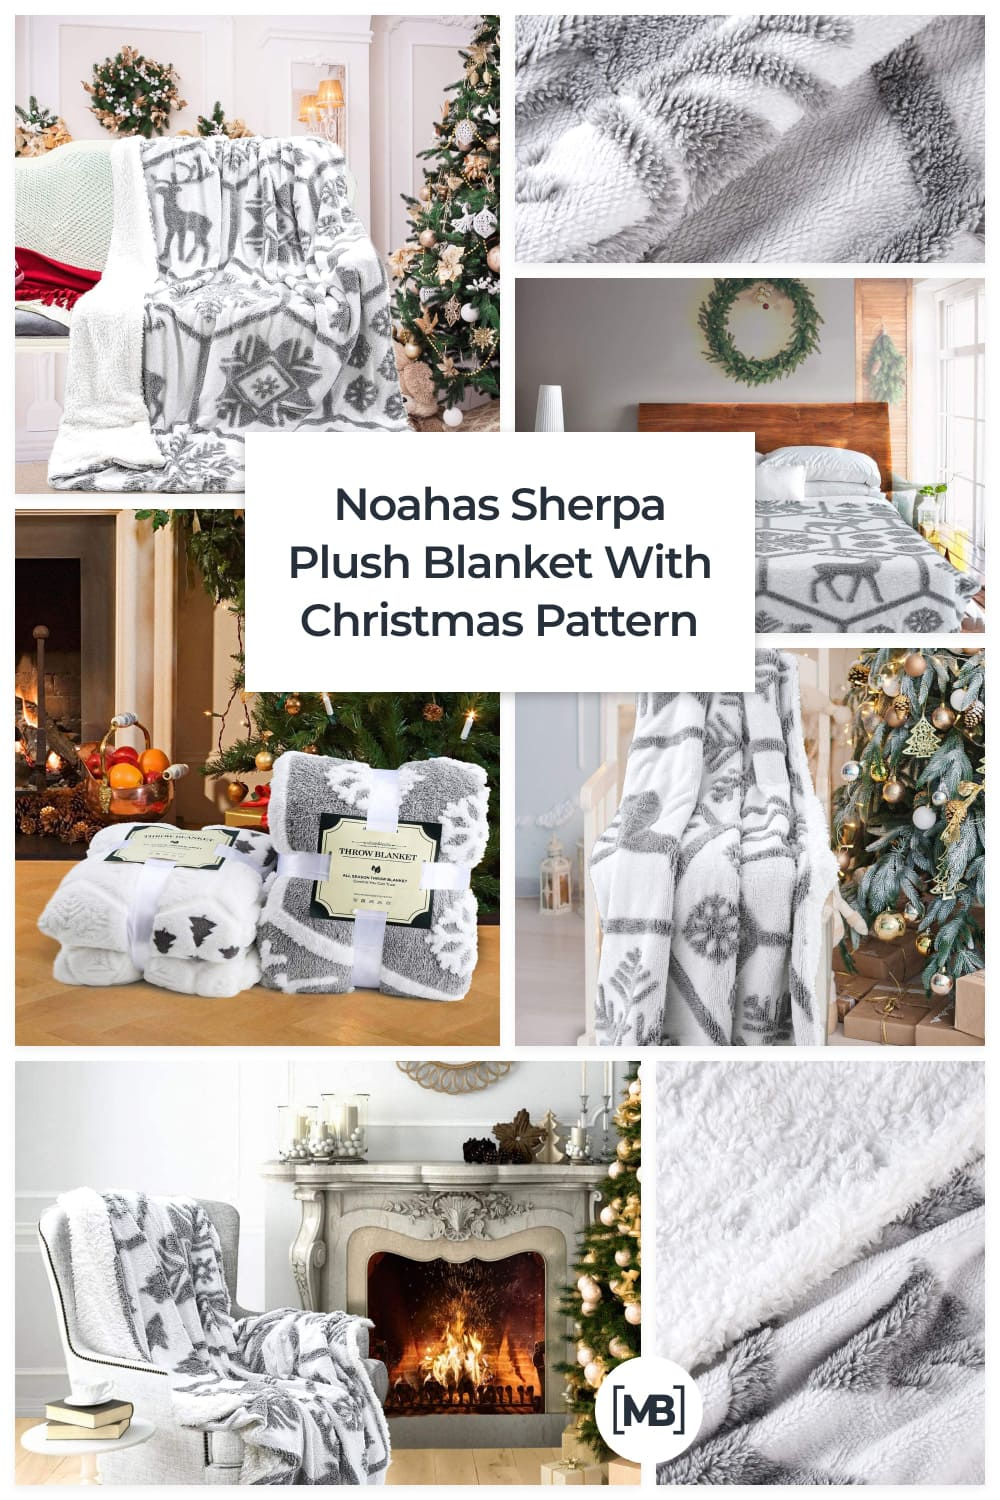 Get cozy and warm with this super soft sherpa faux fur blanket, perfect for snuggling up on the couch especially on chilly nights.